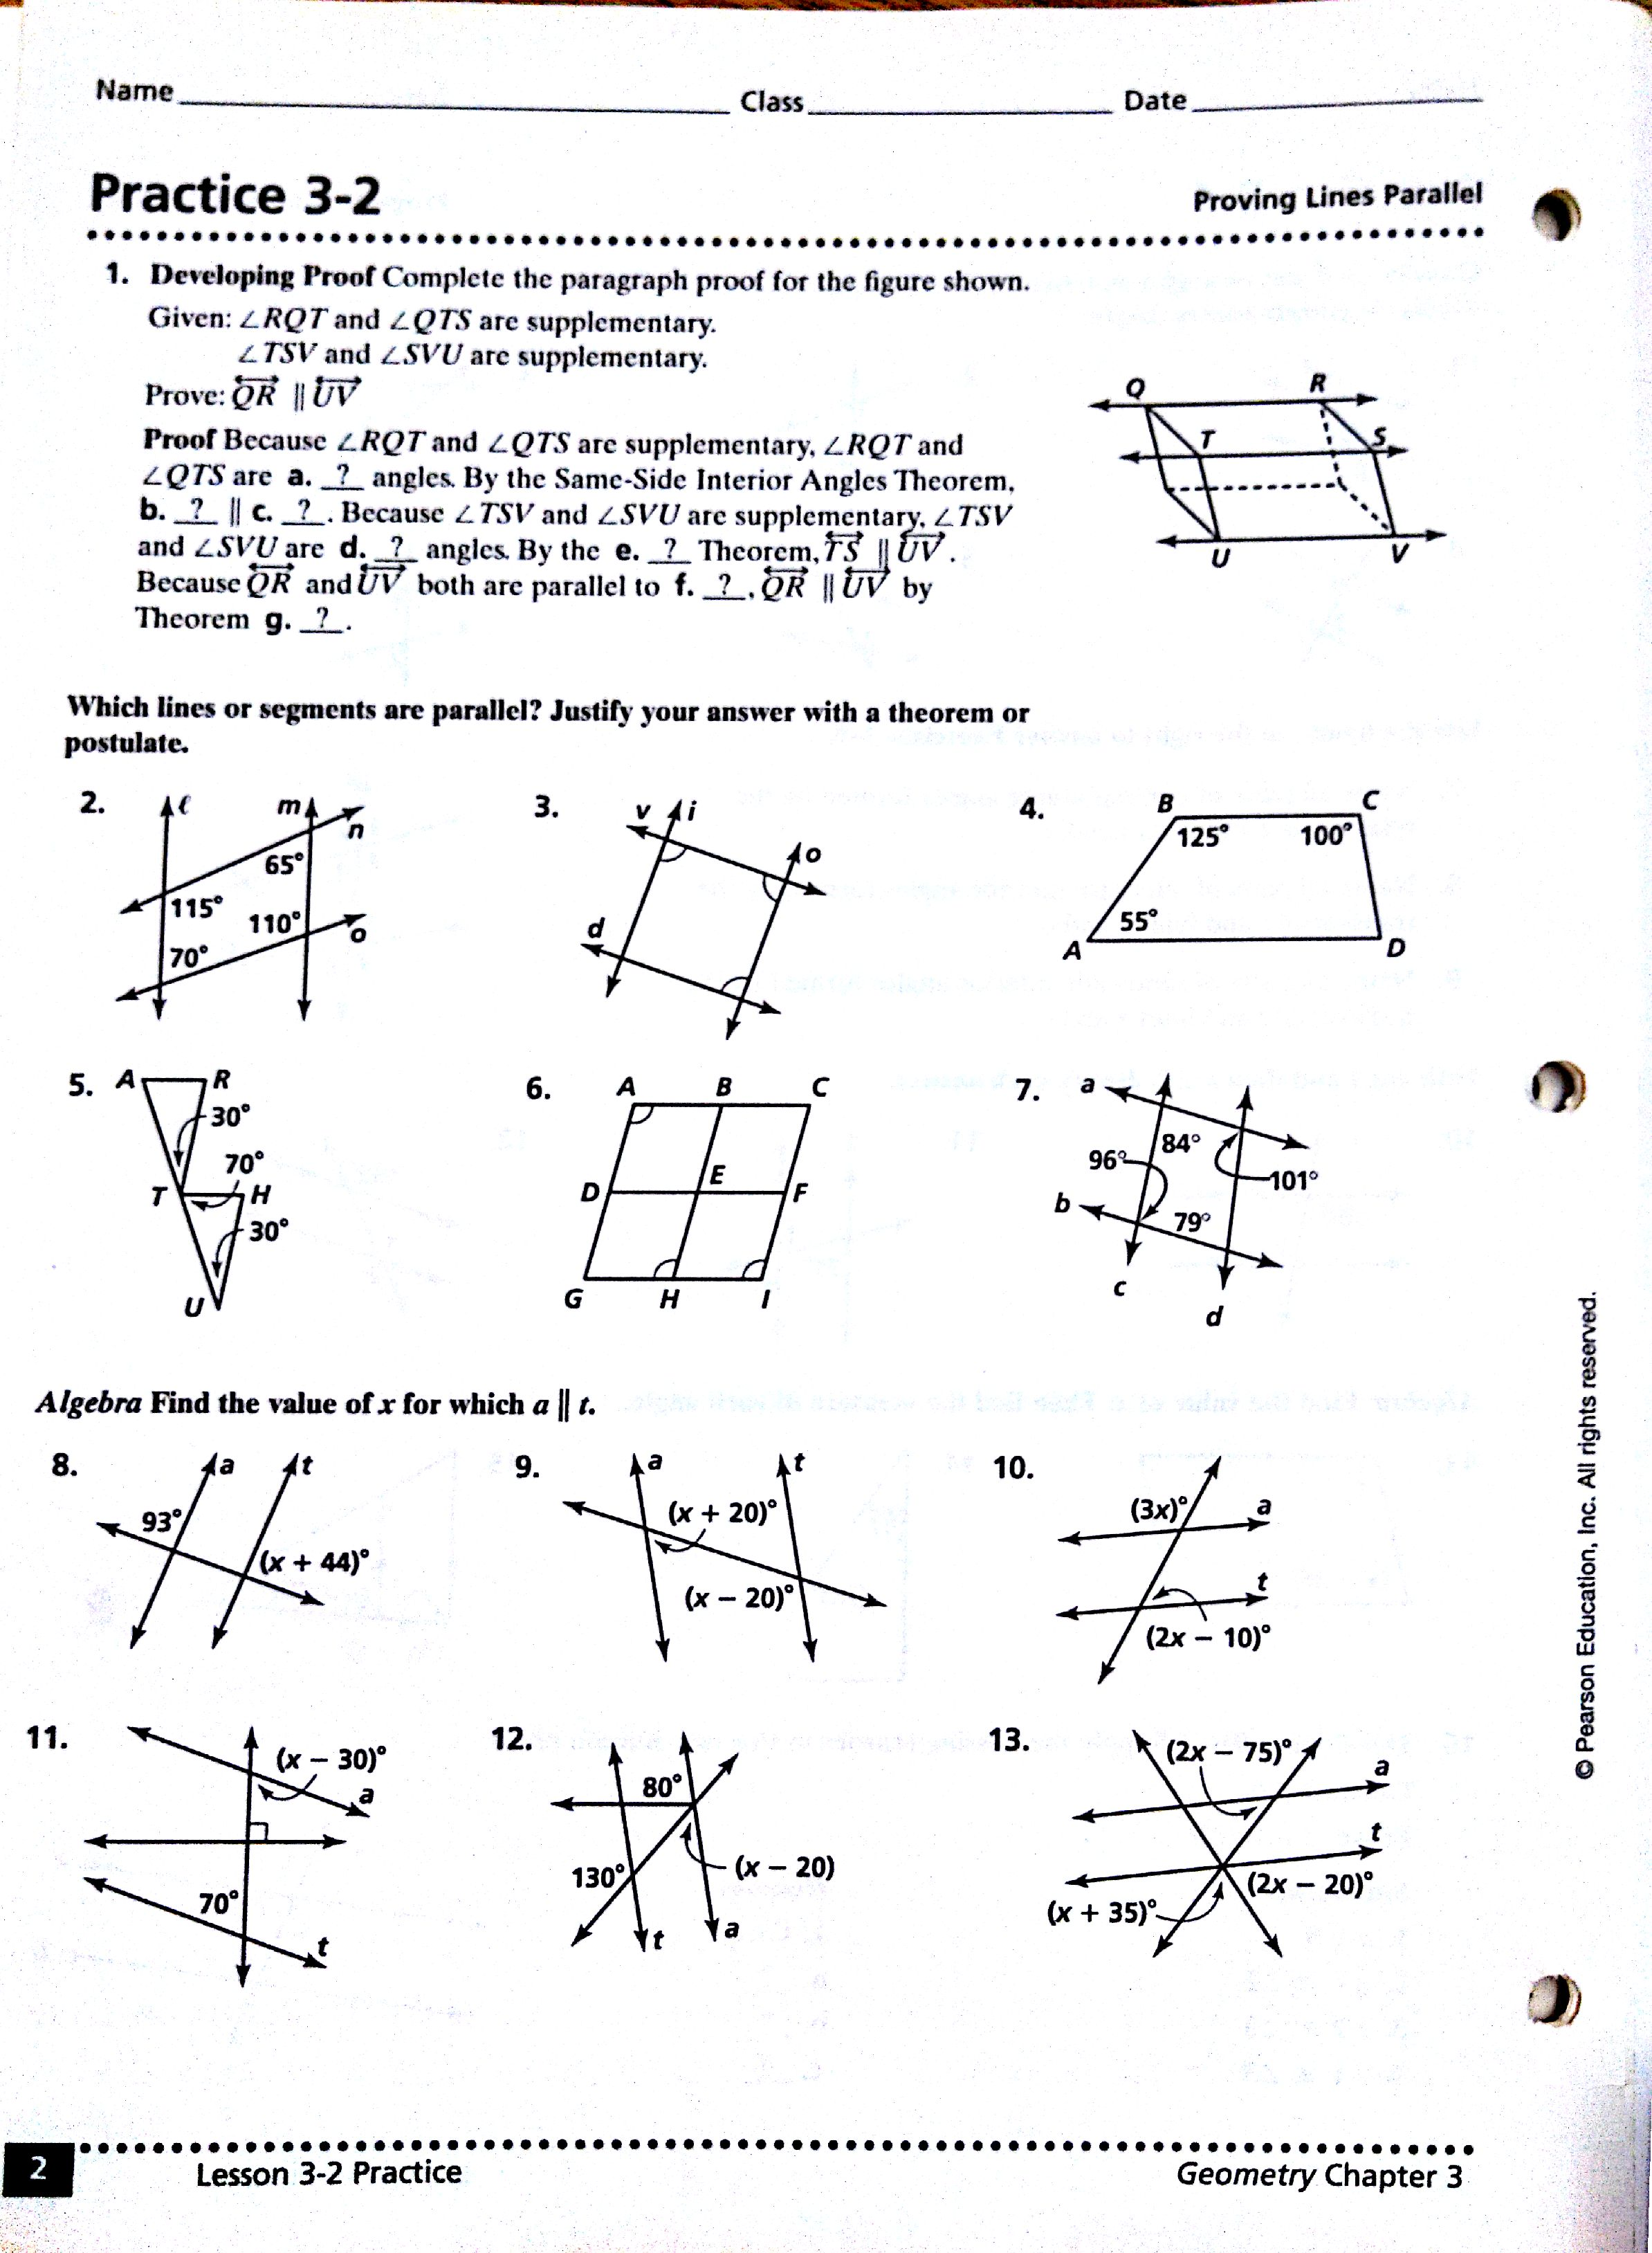 Worksheets Geometry Worksheets Pdf worksheets math with mrs casillas practice 3 2